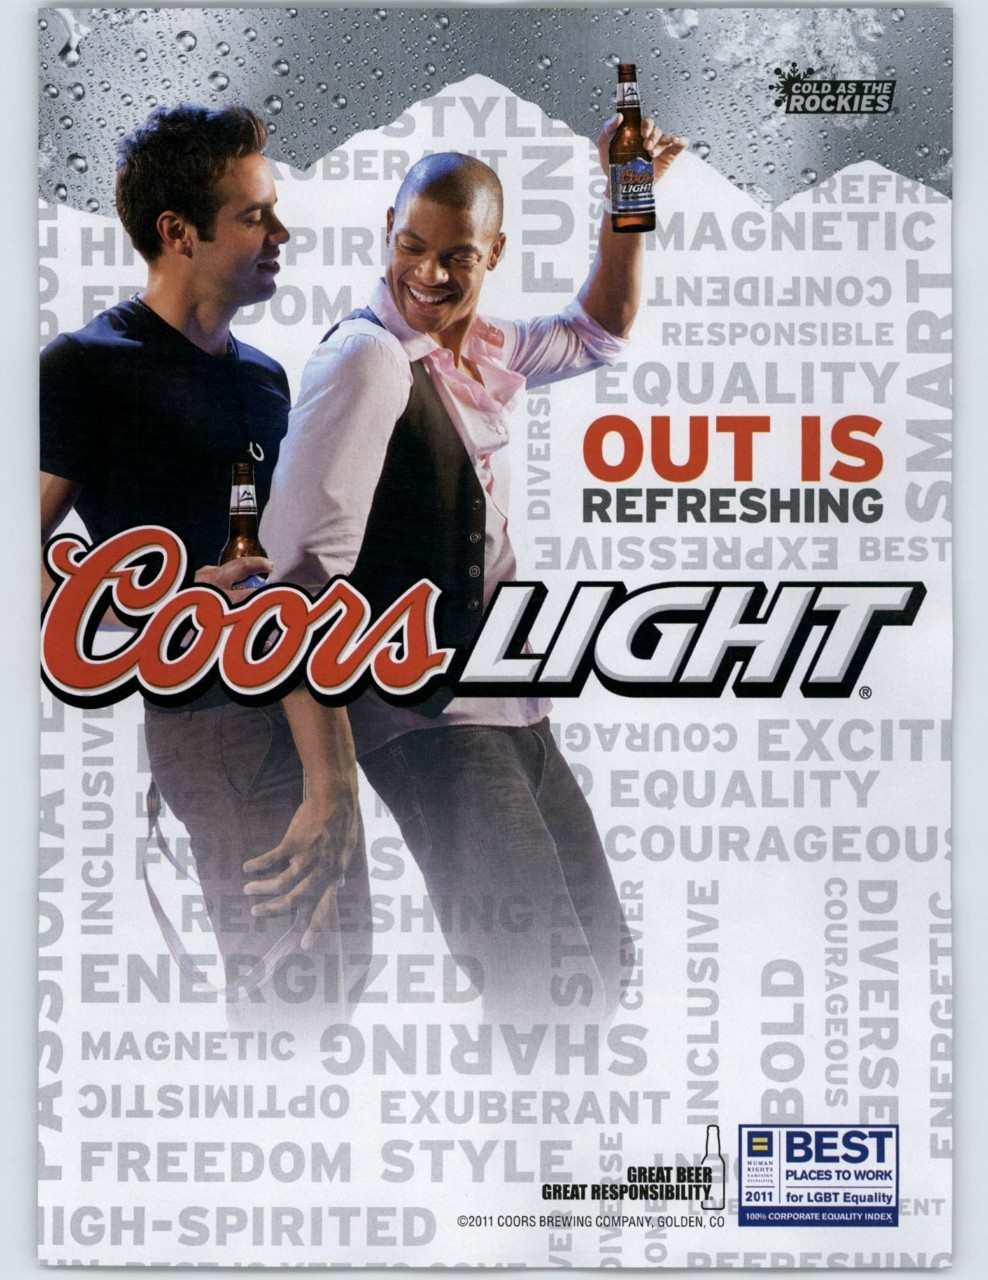 Out is Refreshing. Nice, Coors.